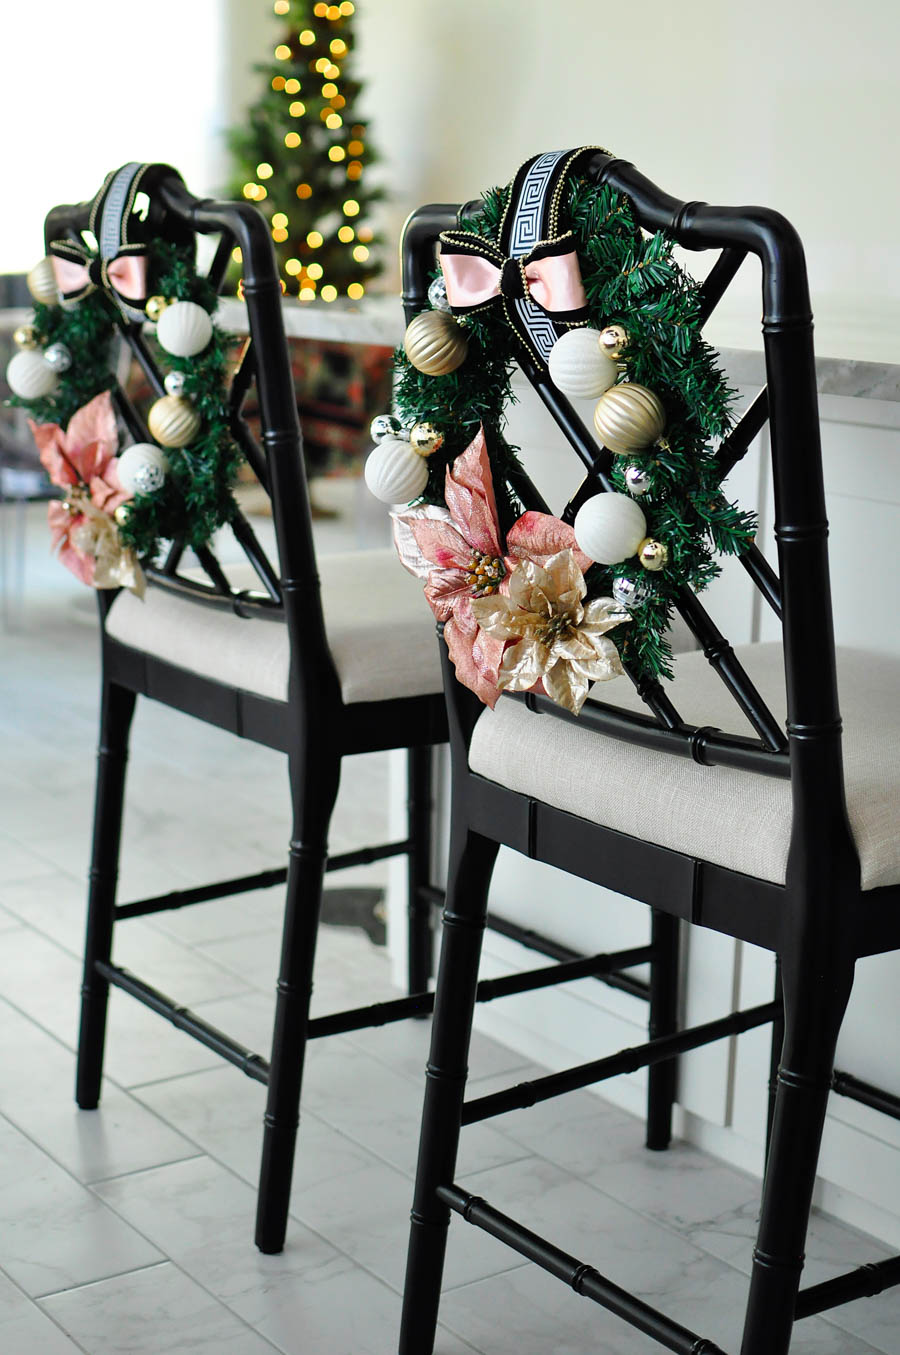 DIY blush and greek key chair wreaths for Christmas decor